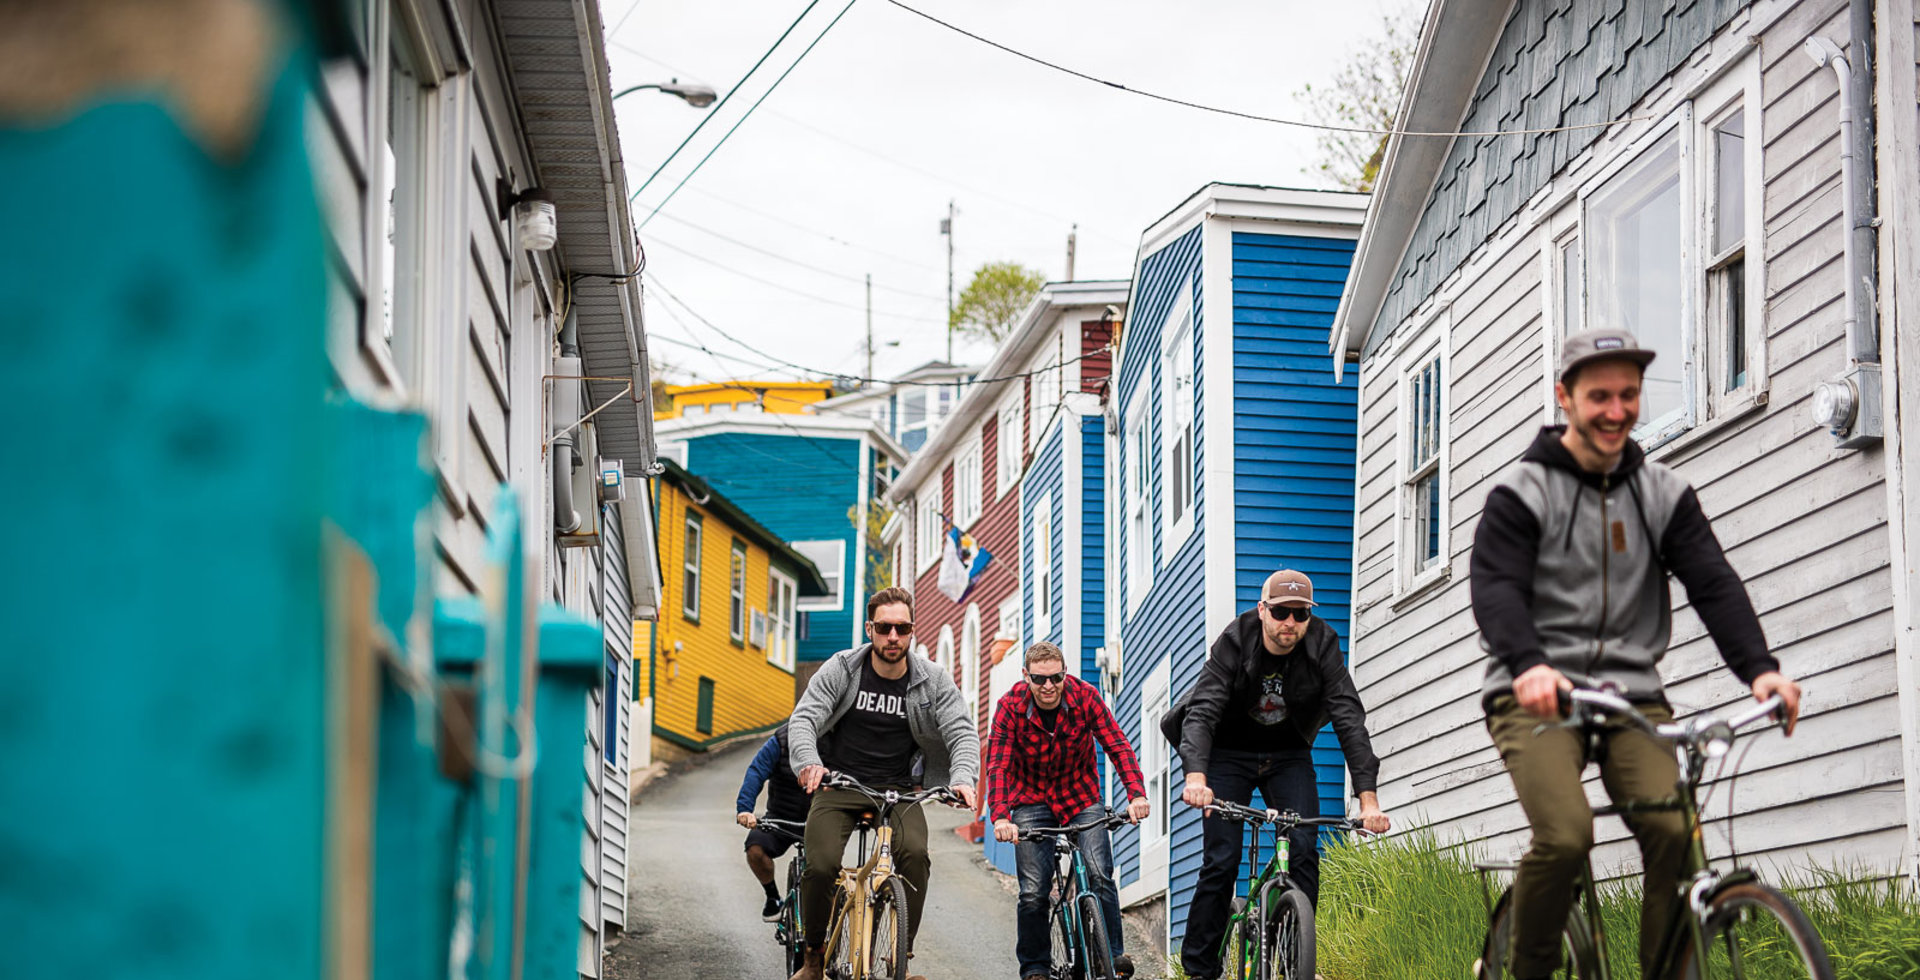 With a small but dedicated scene of mountain bikers in St. John's, the crew runs deep. After a week of riding the island's singletrack, Chris Jerrett, Lachlan Roe-Bose, Mike Trickett, Kaelam Power and Matt Beer (left to right) take to the streets of the Battery for some good old-fashioned hill bombing.